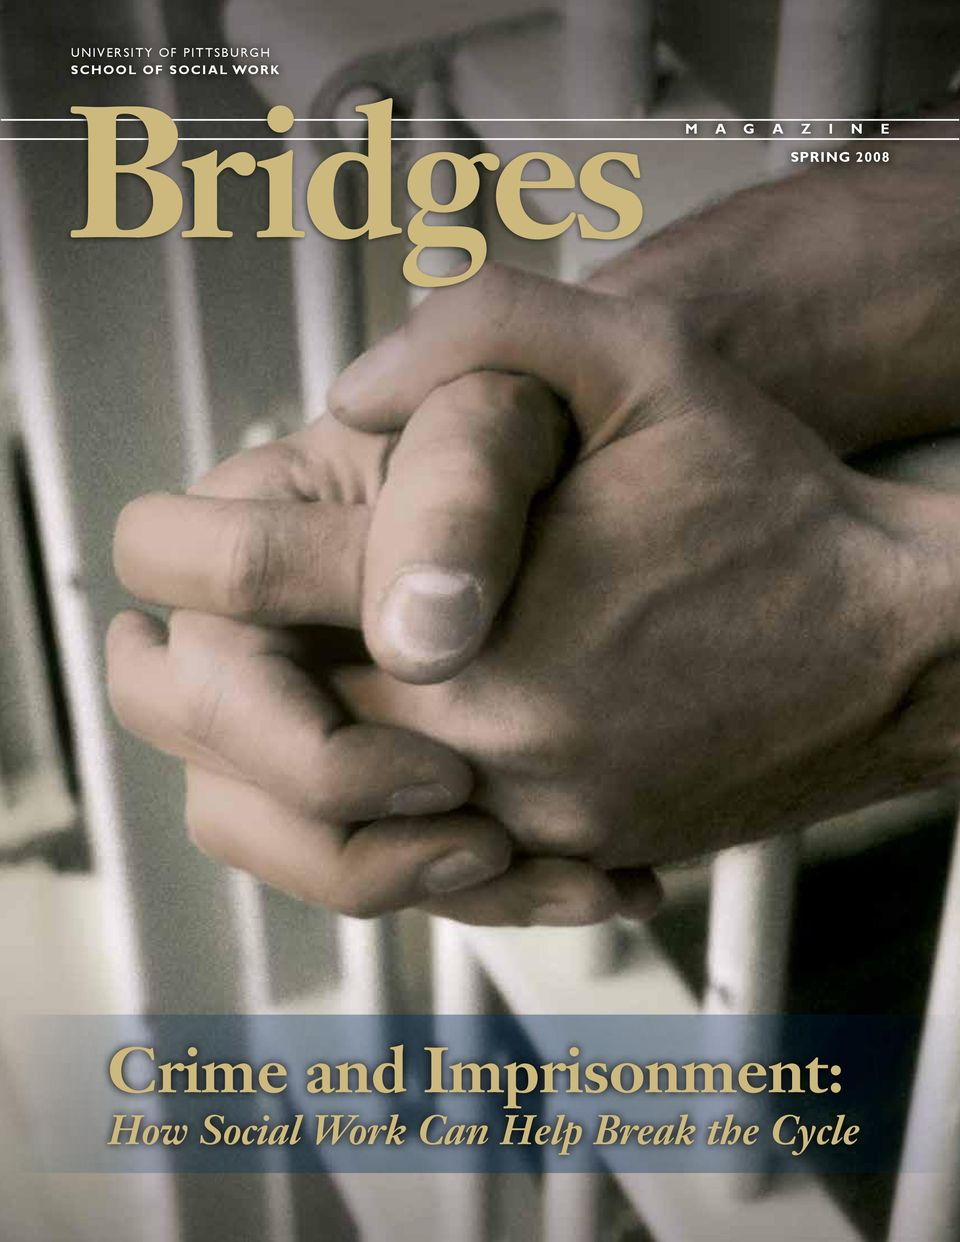 SPRING 2008 Crime and Imprisonment: